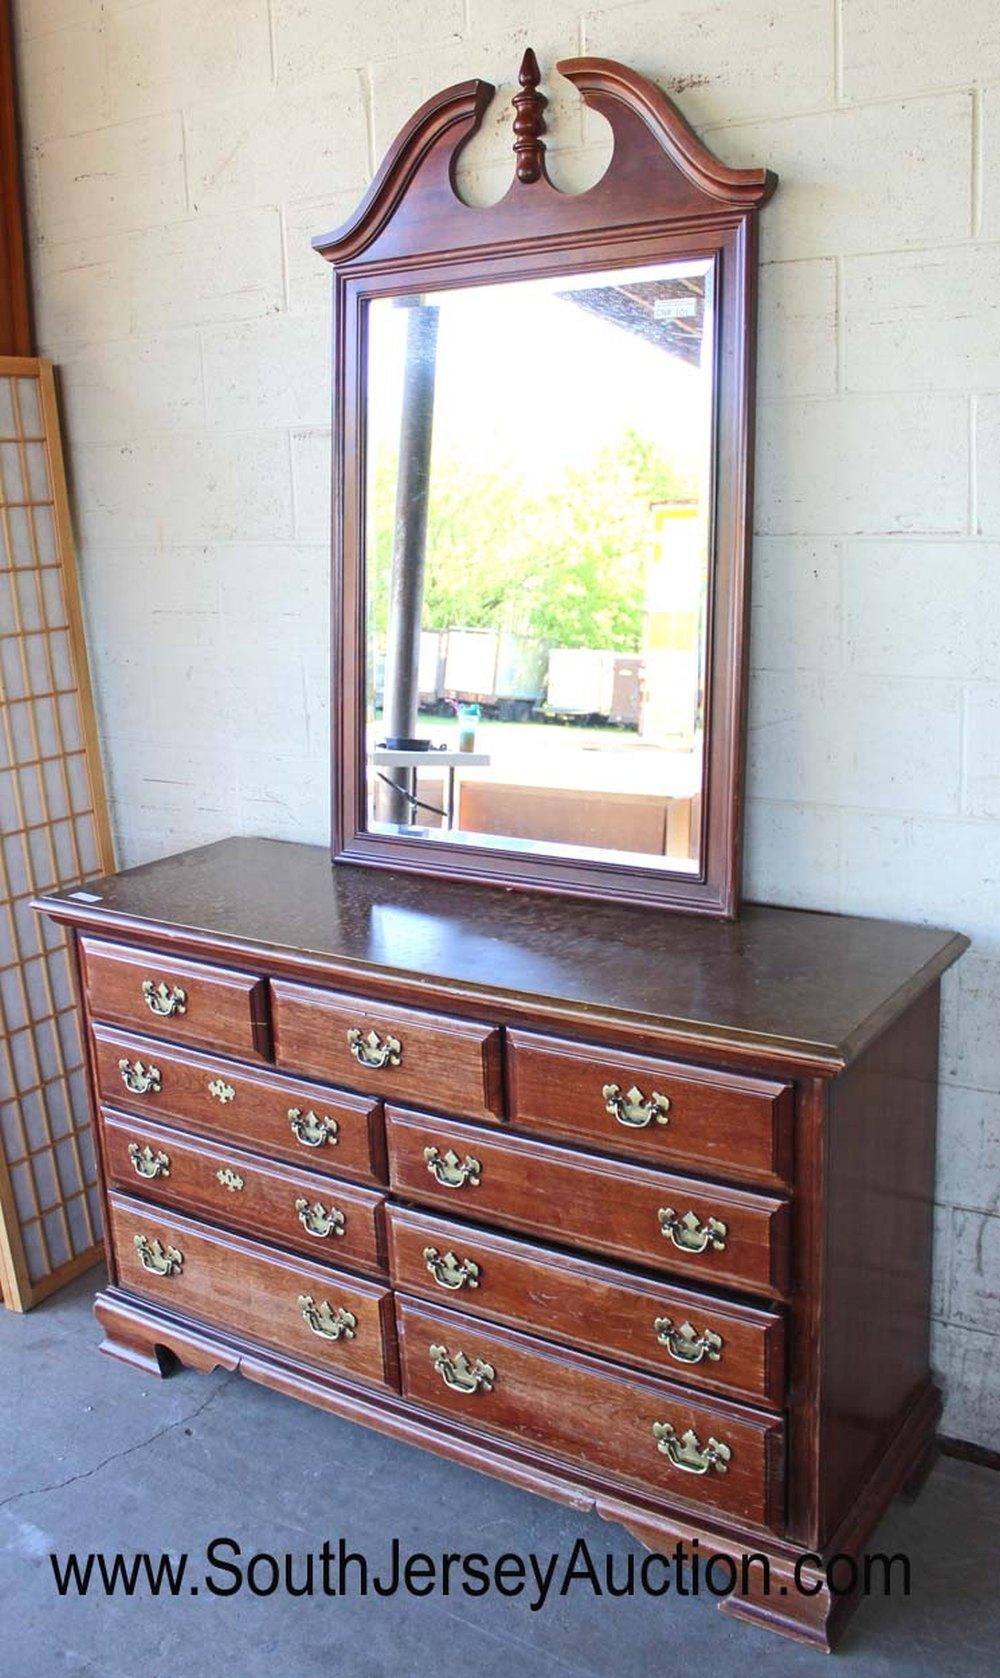 Contemporary Solid Cherry Bracket Foot Low Chest with Mirror by Dixie Furniture